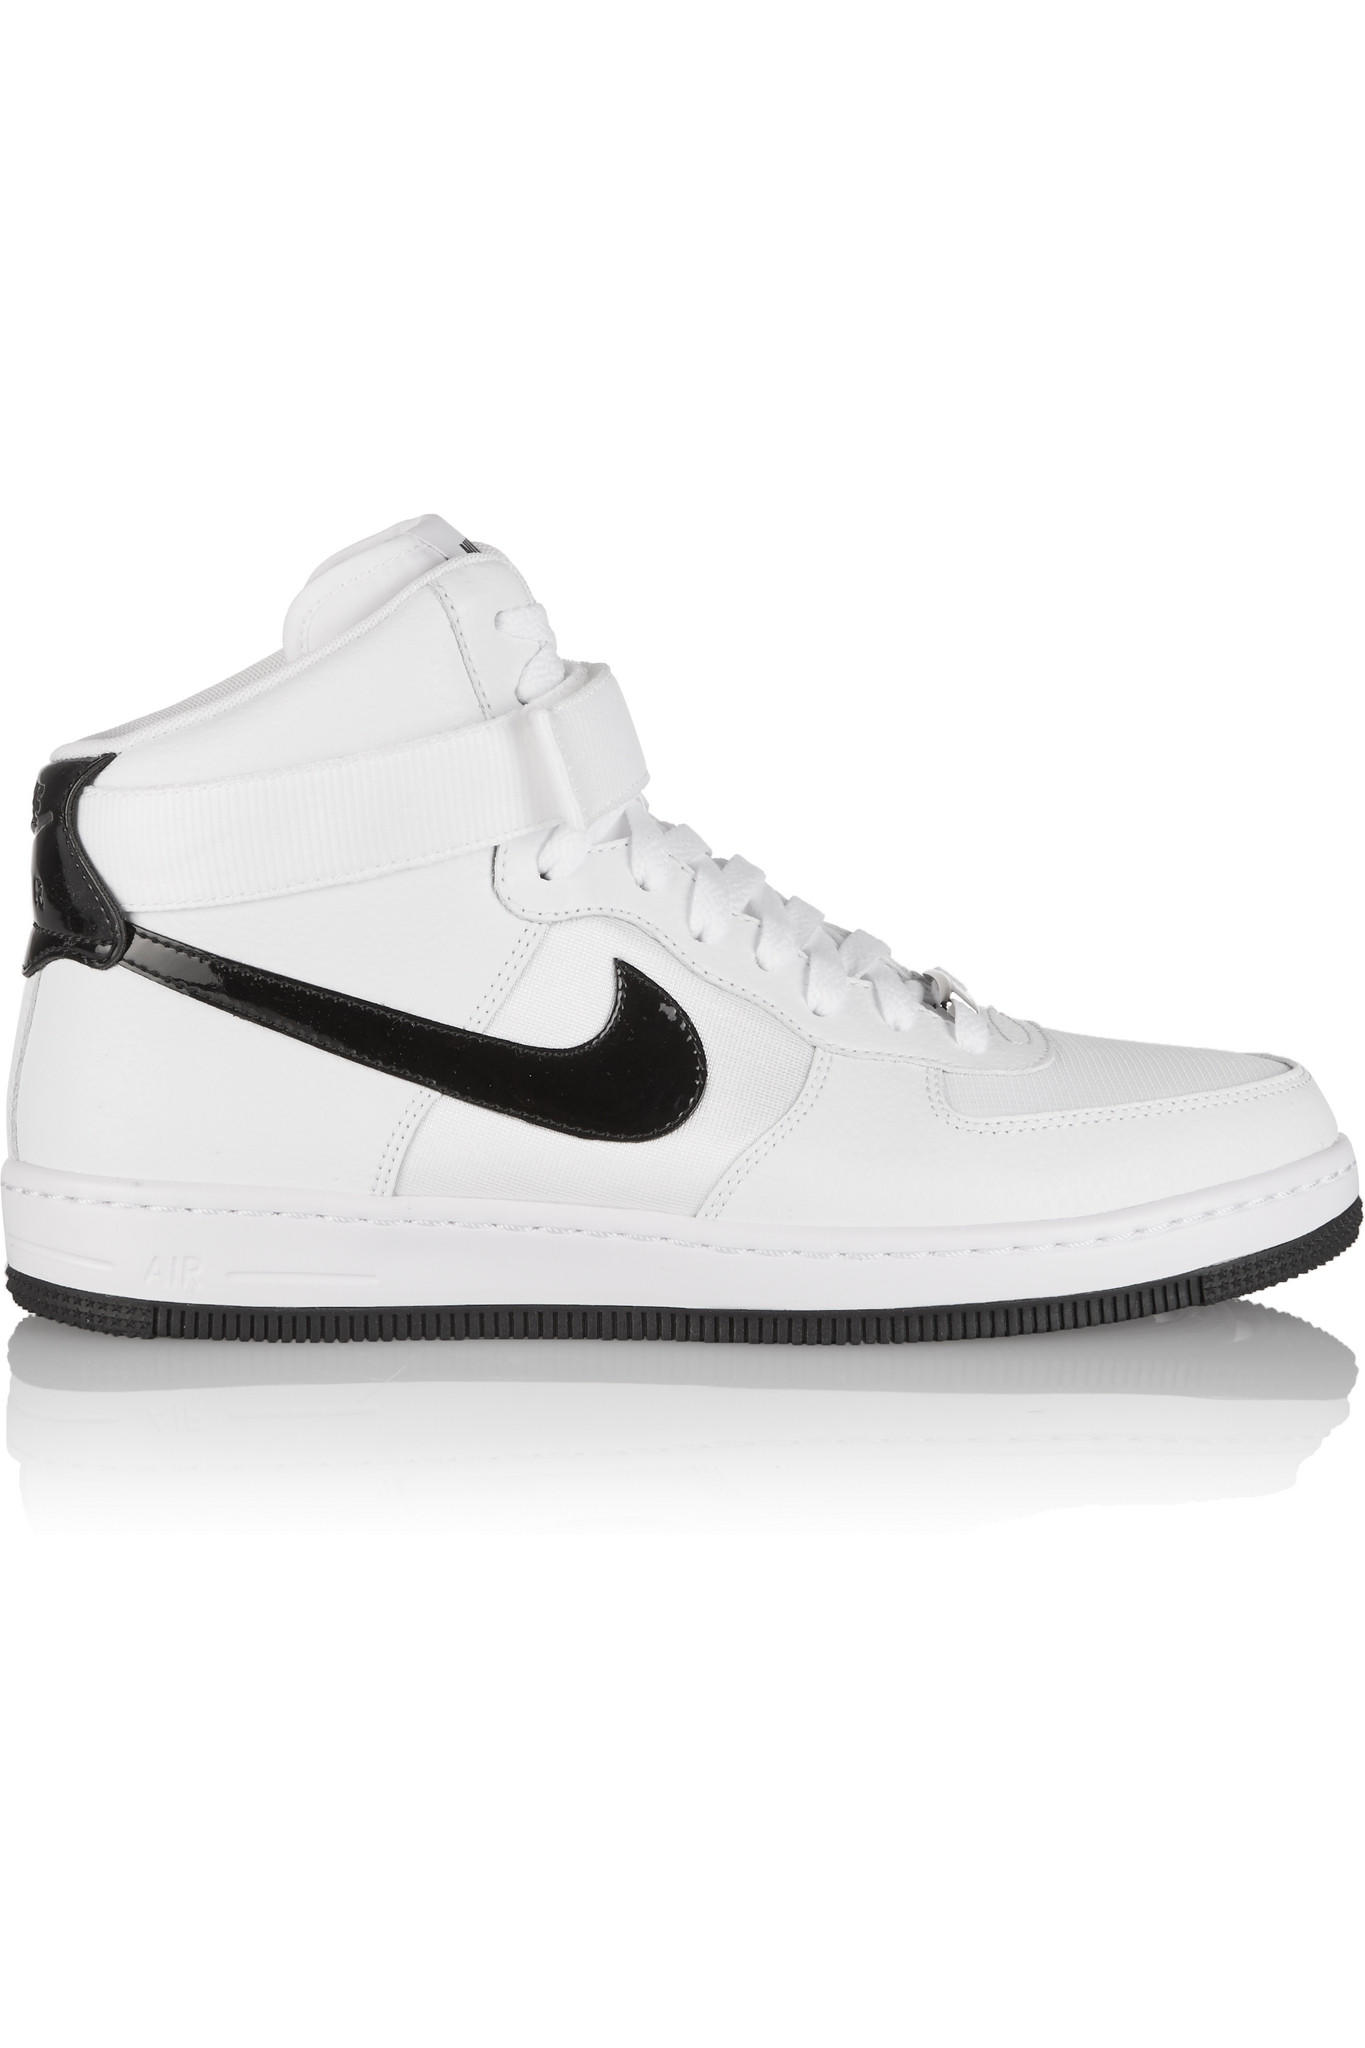 Nike - Air Force 1 Ultra Force leather from NET-A-PORTER 386fc333c3